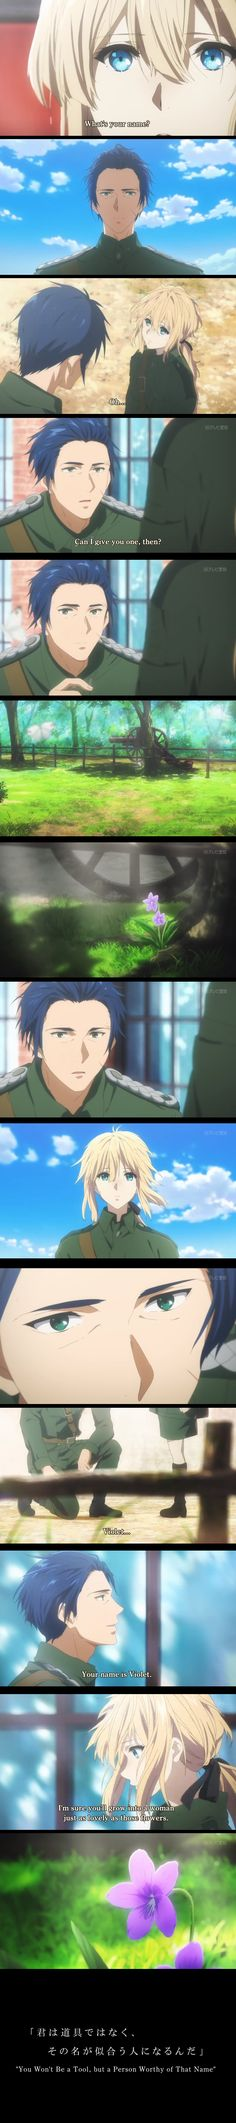 """gave Violet her name // Episode 4 // I really love all anime characters named, """"Gilbert"""" // Violet Evergarden // Violet x Gilbert All Anime, Anime Love, Manga Anime, Anime Character Names, Violet Evergarden Wallpaper, Violet Evergreen, Violet Evergarden Anime, A Silent Voice, Image Fun"""